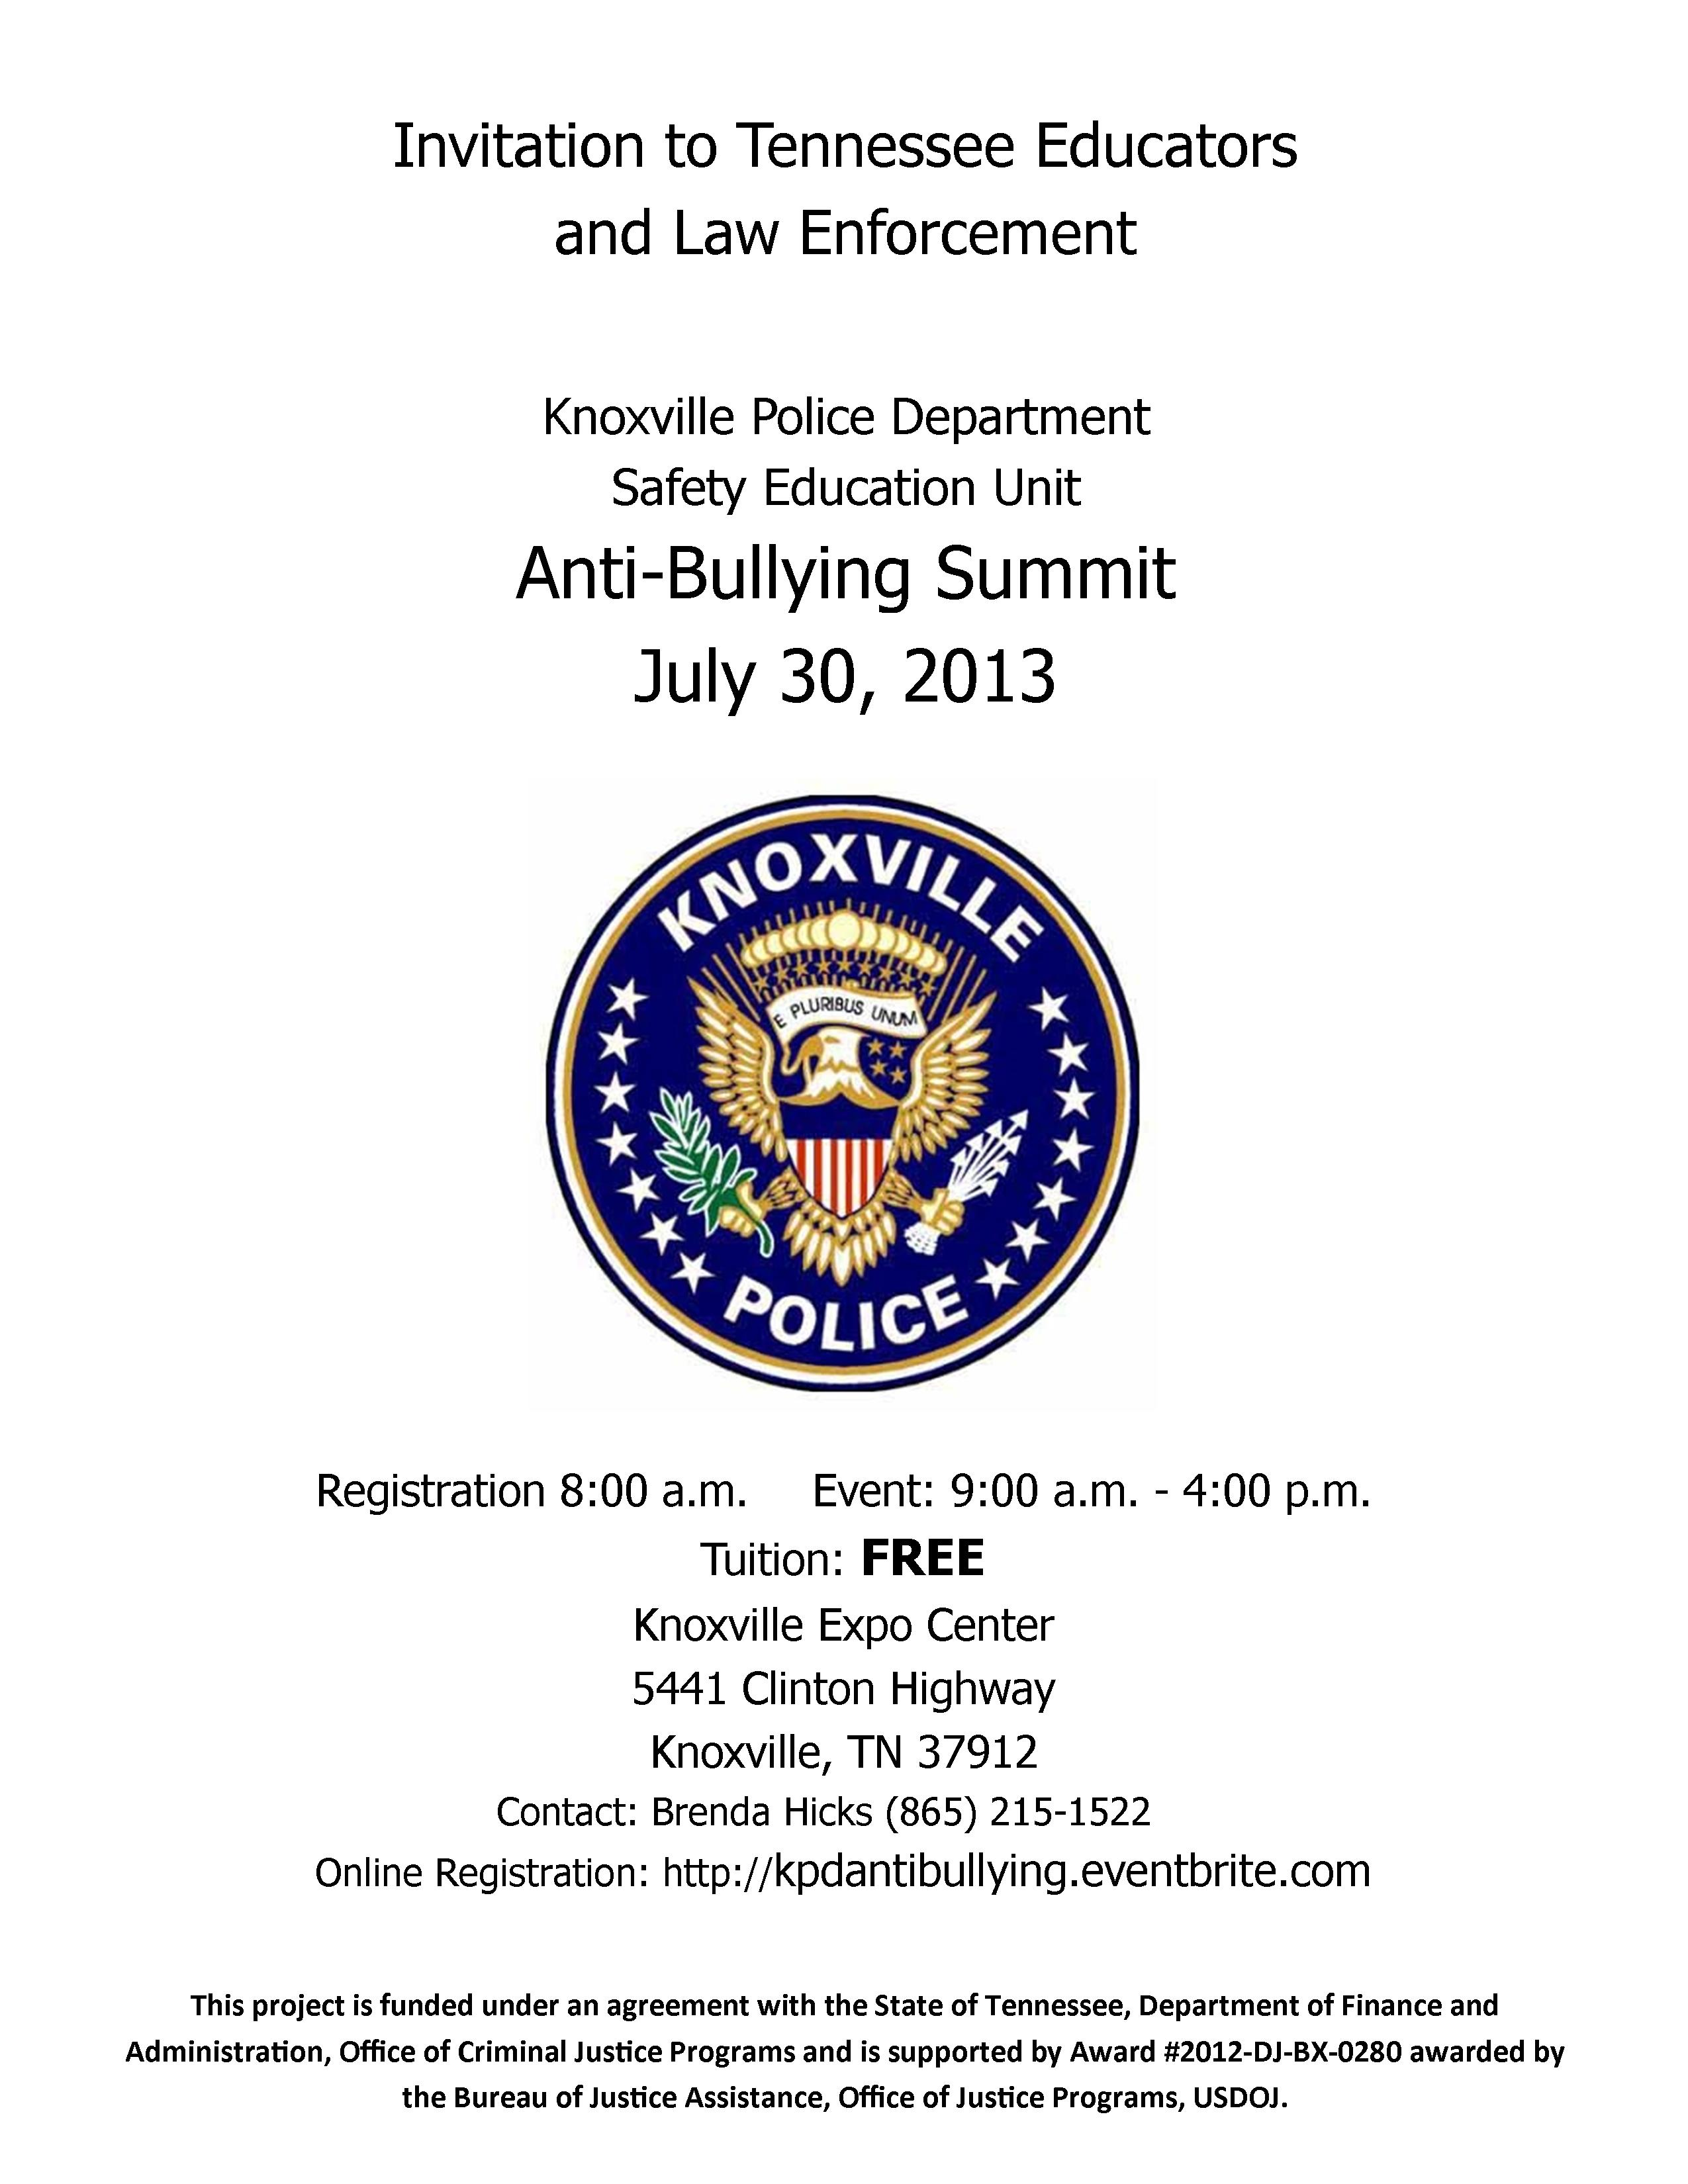 invitation for Tennessee educators and law enforcement. The Knoxville Police Department's Safety Education Unit presents the 2013 Anti-Bullying Summit on Tuesday, July 20, 2013 at the Knoxville Expo Center. Registration begins at 8:00 a.m. The event is scheduled from 9:00 a.m. to 4:00 p.m. Tuition for this event is free. Please call Brenda Hicks at 865-215-1522 for assistance with registration or with accomodations for hearing/vision/mobility.